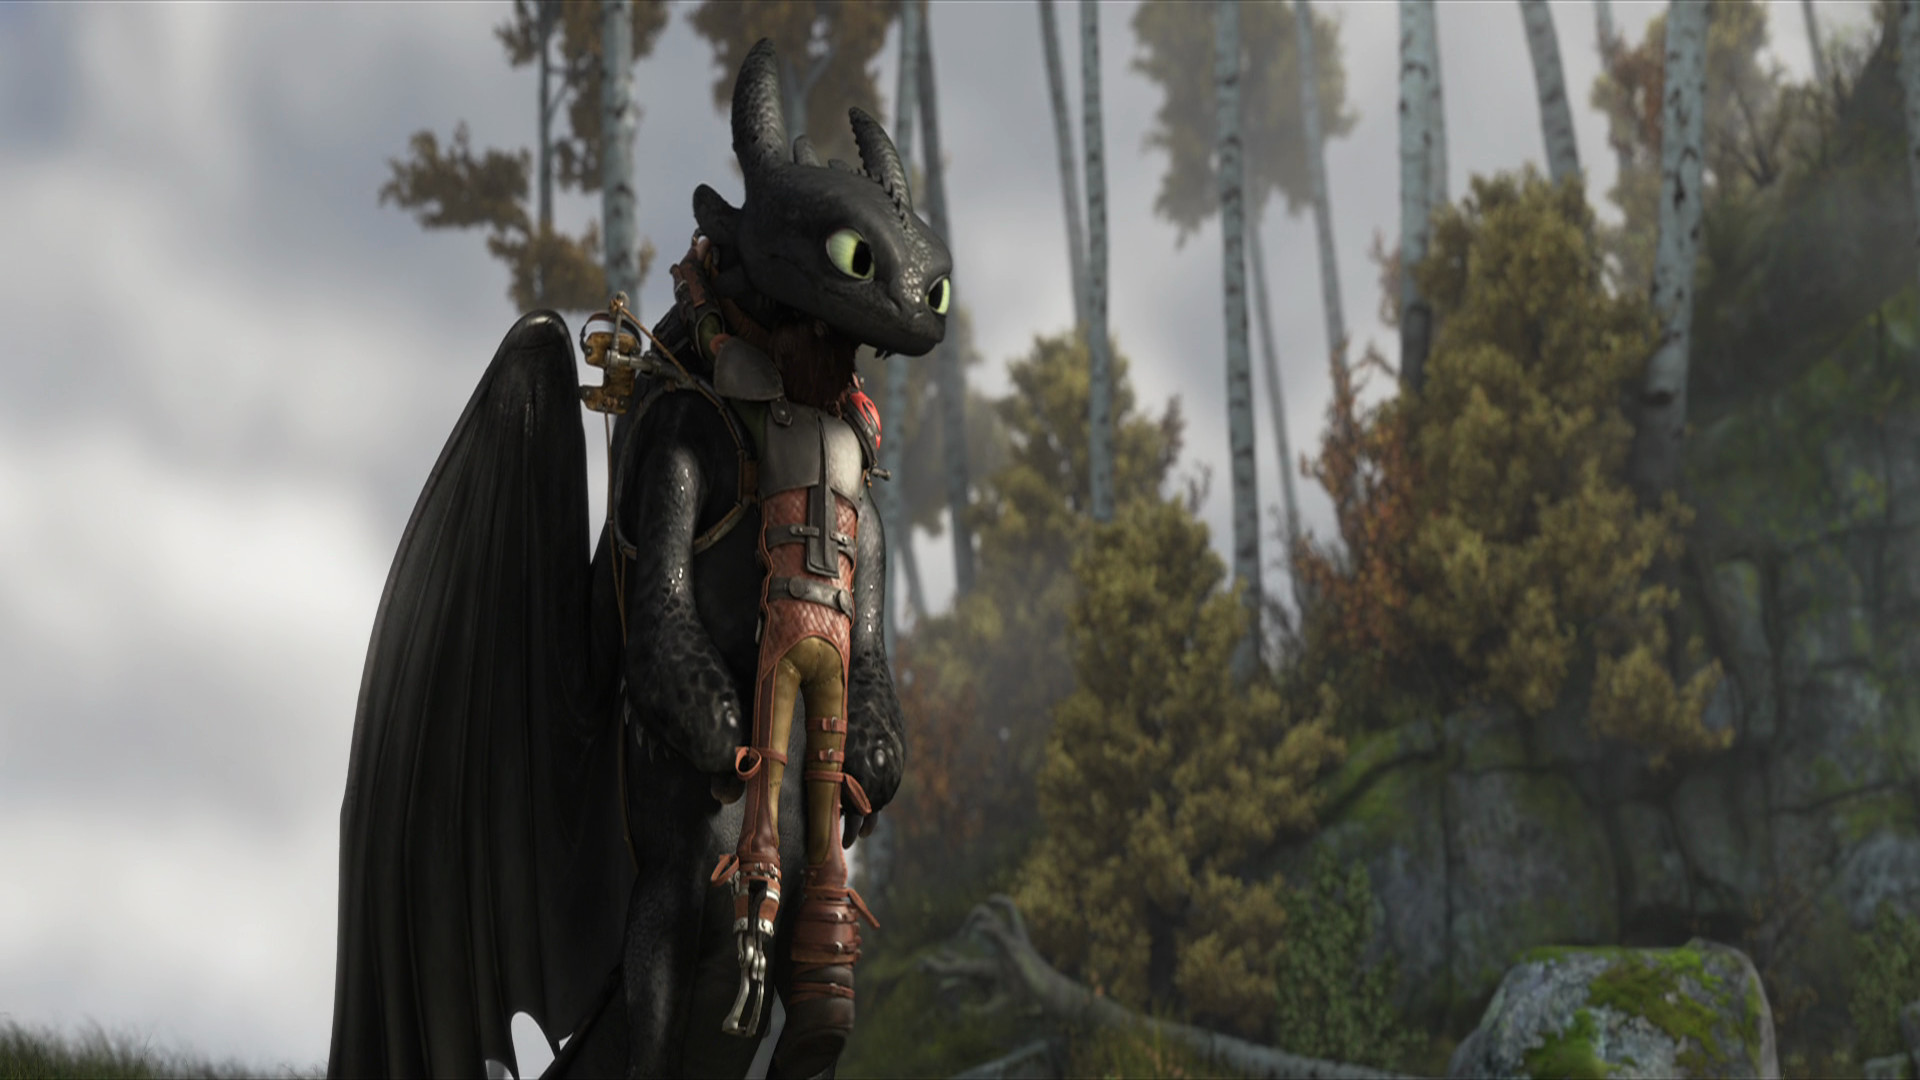 Movie – How to Train Your Dragon 2 Hiccup (How to Train Your Dragon)